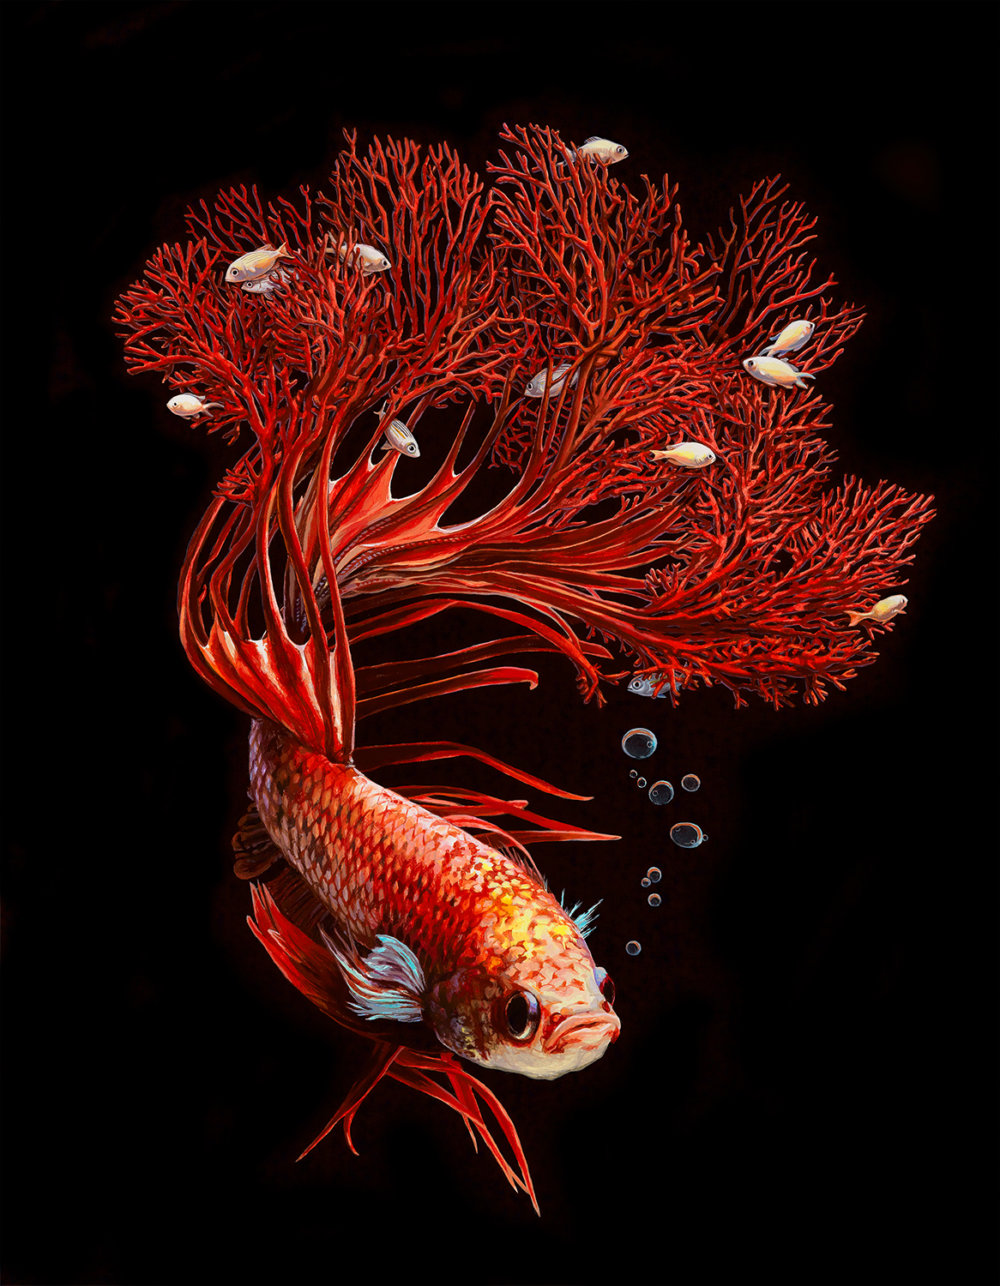 Fish And Coral Reefs Twisted Into The Lush Acrylic Paintings Of Lisa Ericson 9